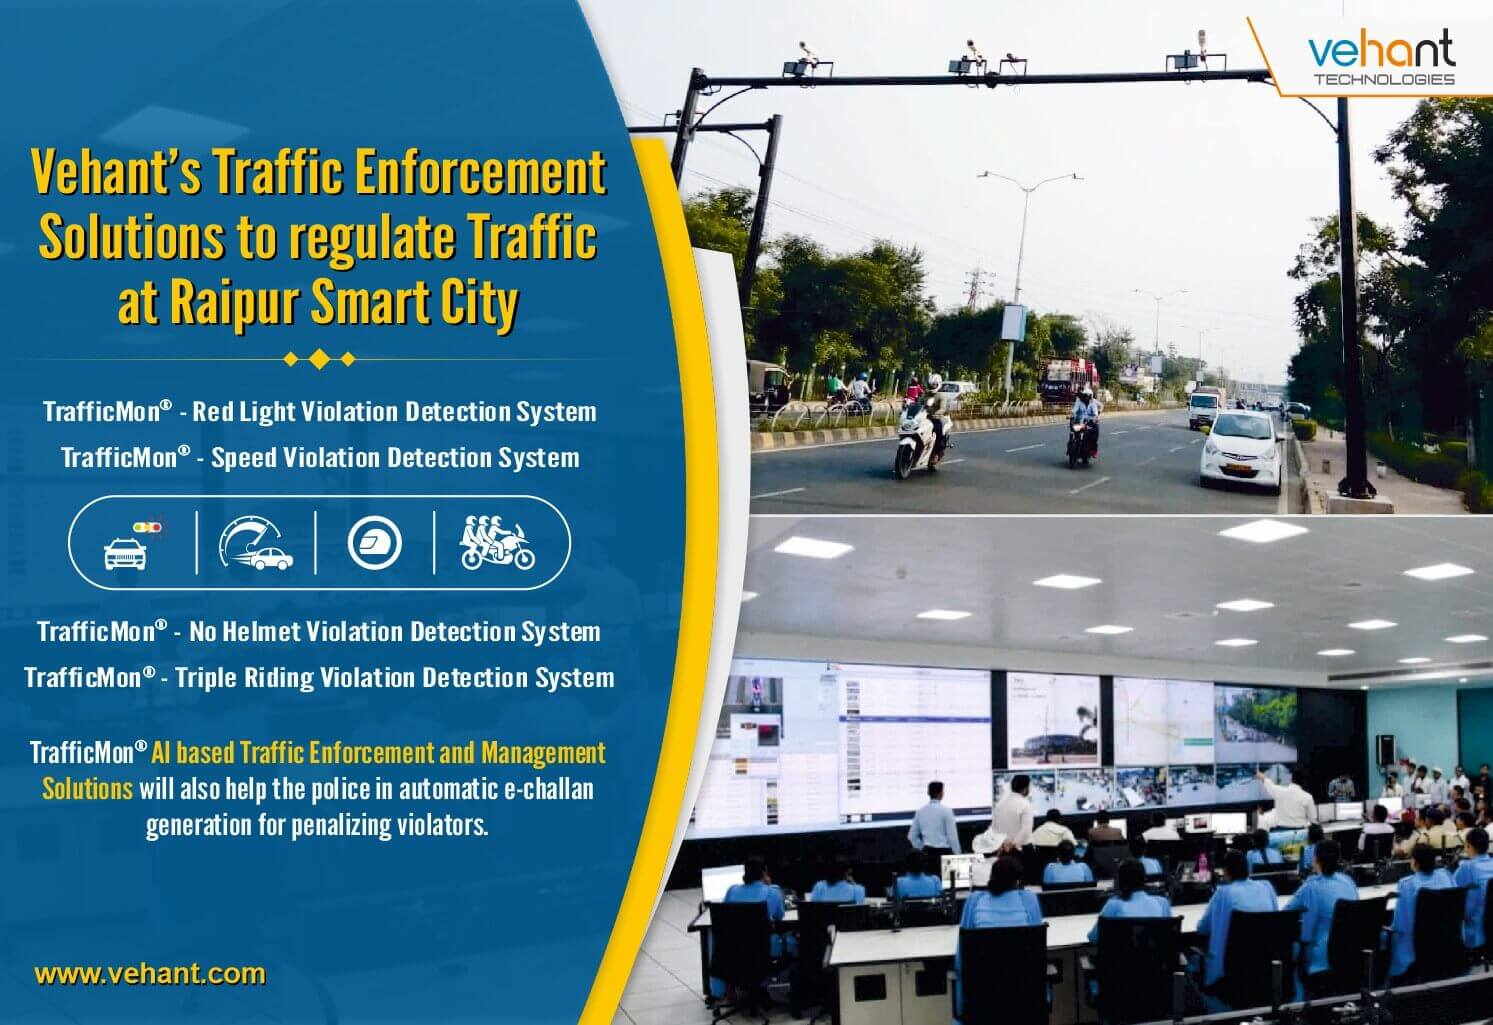 Raipur Smart City Police will take on the traffic violators with Vehant's TrafficMon® - Integrated Traffic Management System. The system is being implemented by Larsen & Toubro.